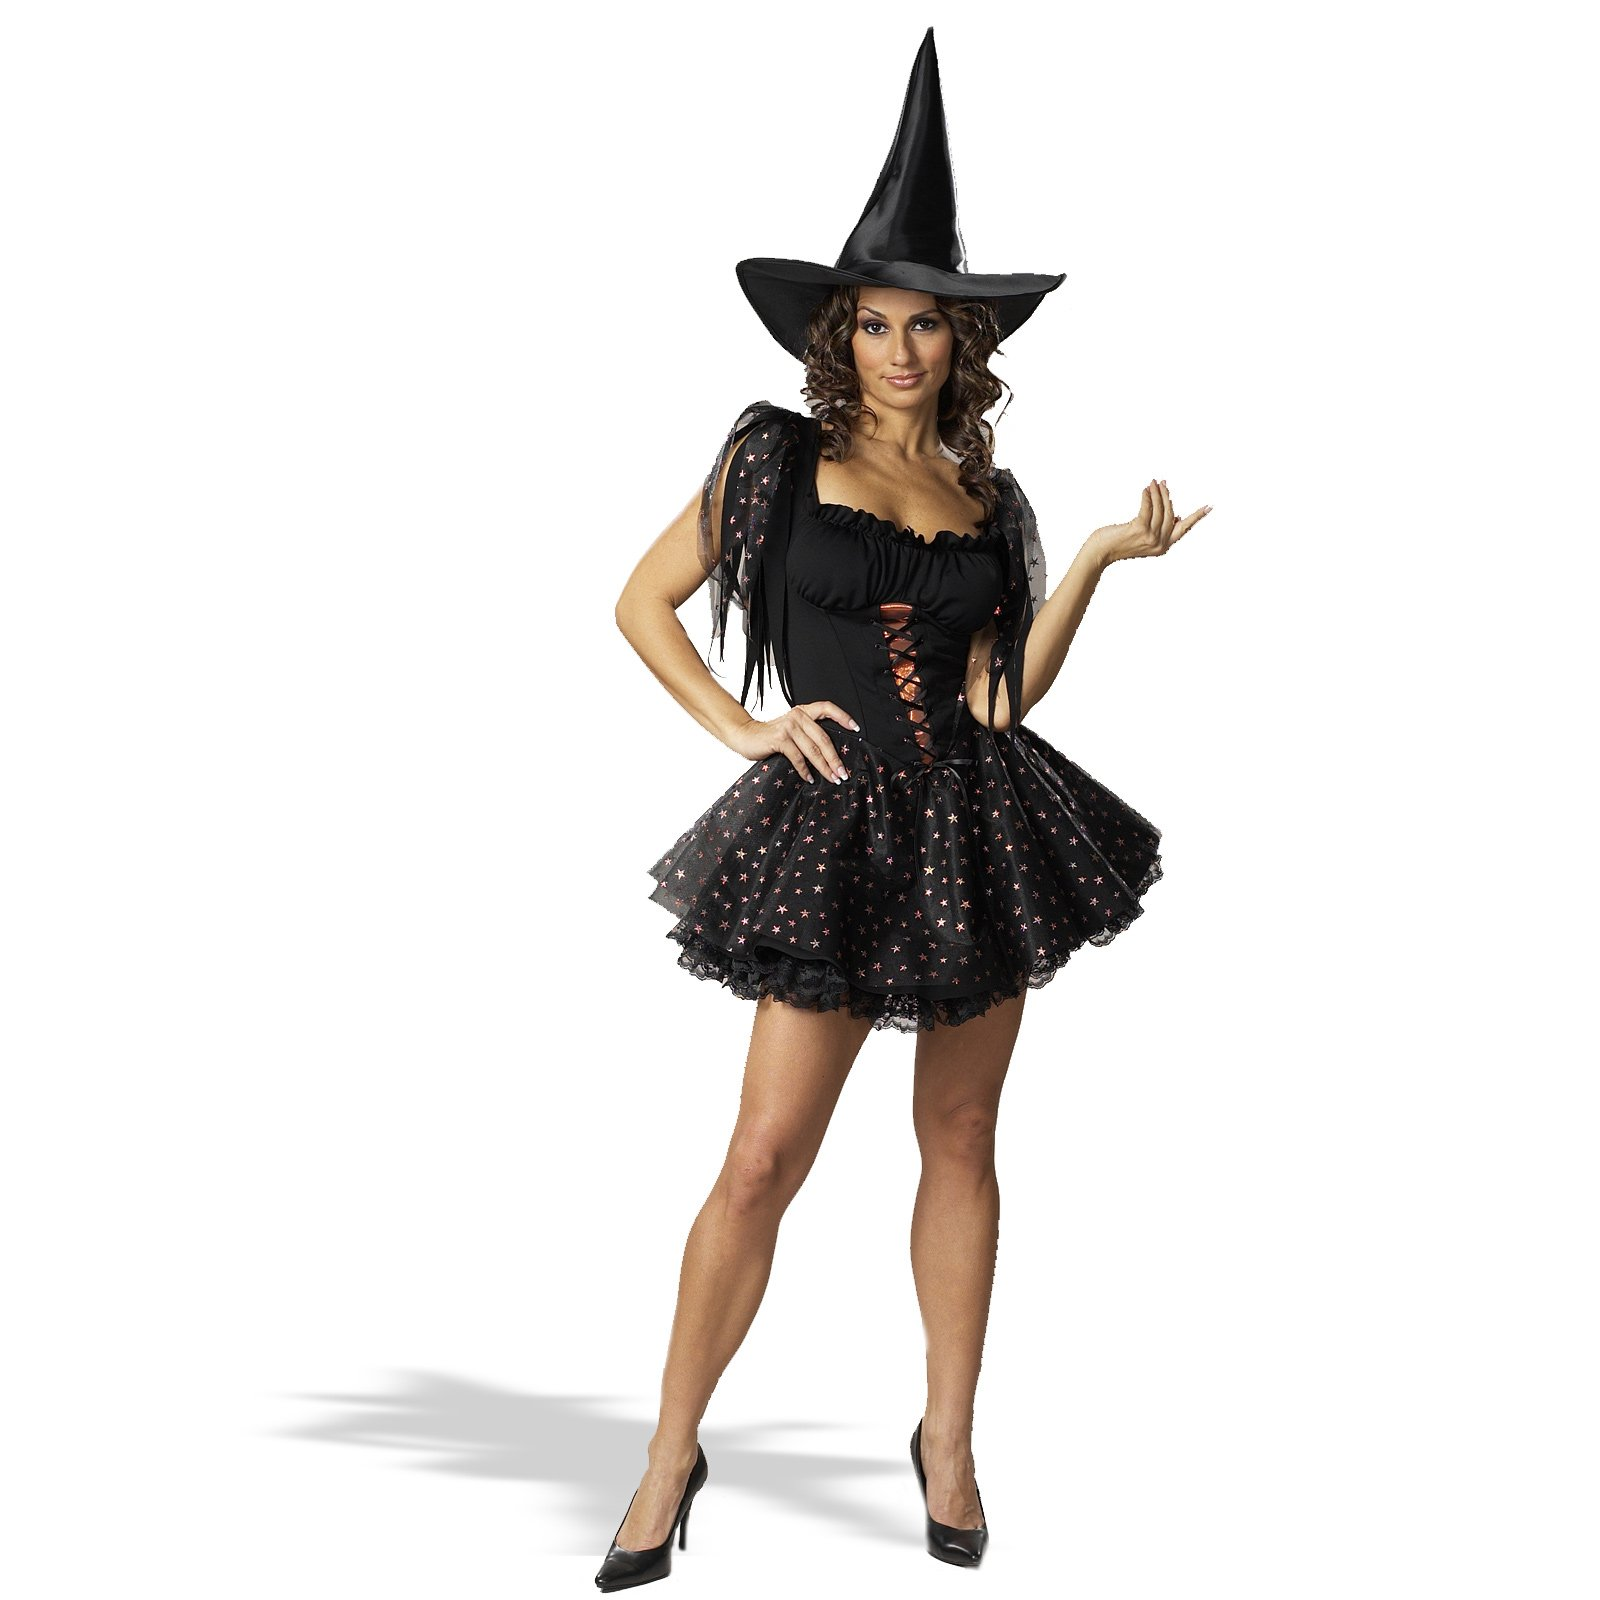 Hot Witch!